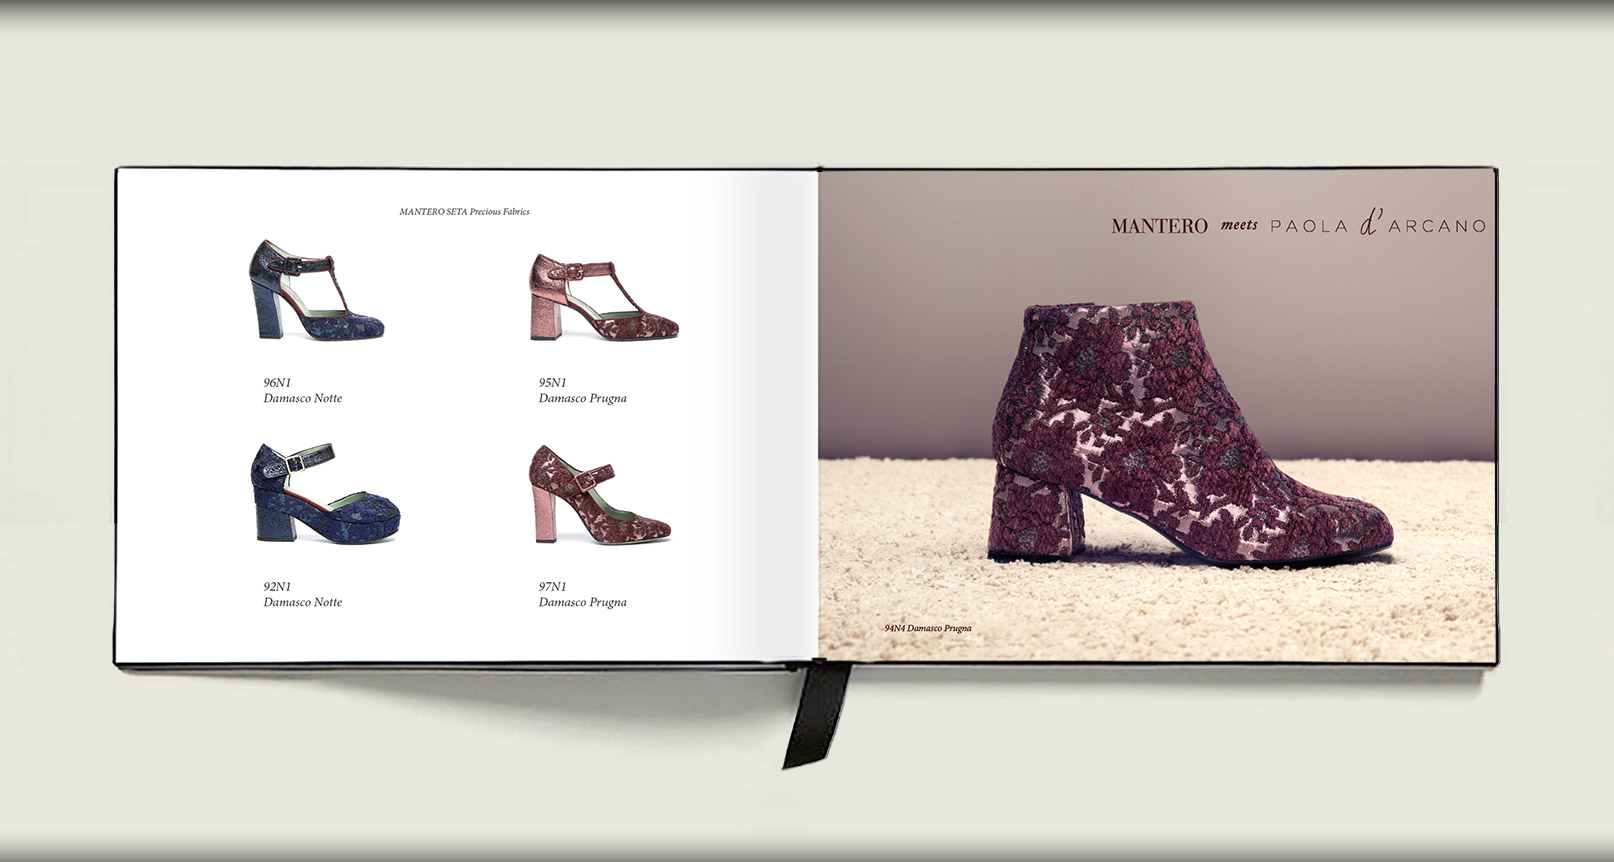 Advertising Paola D'Arcano Shoes Made in Italy - 9